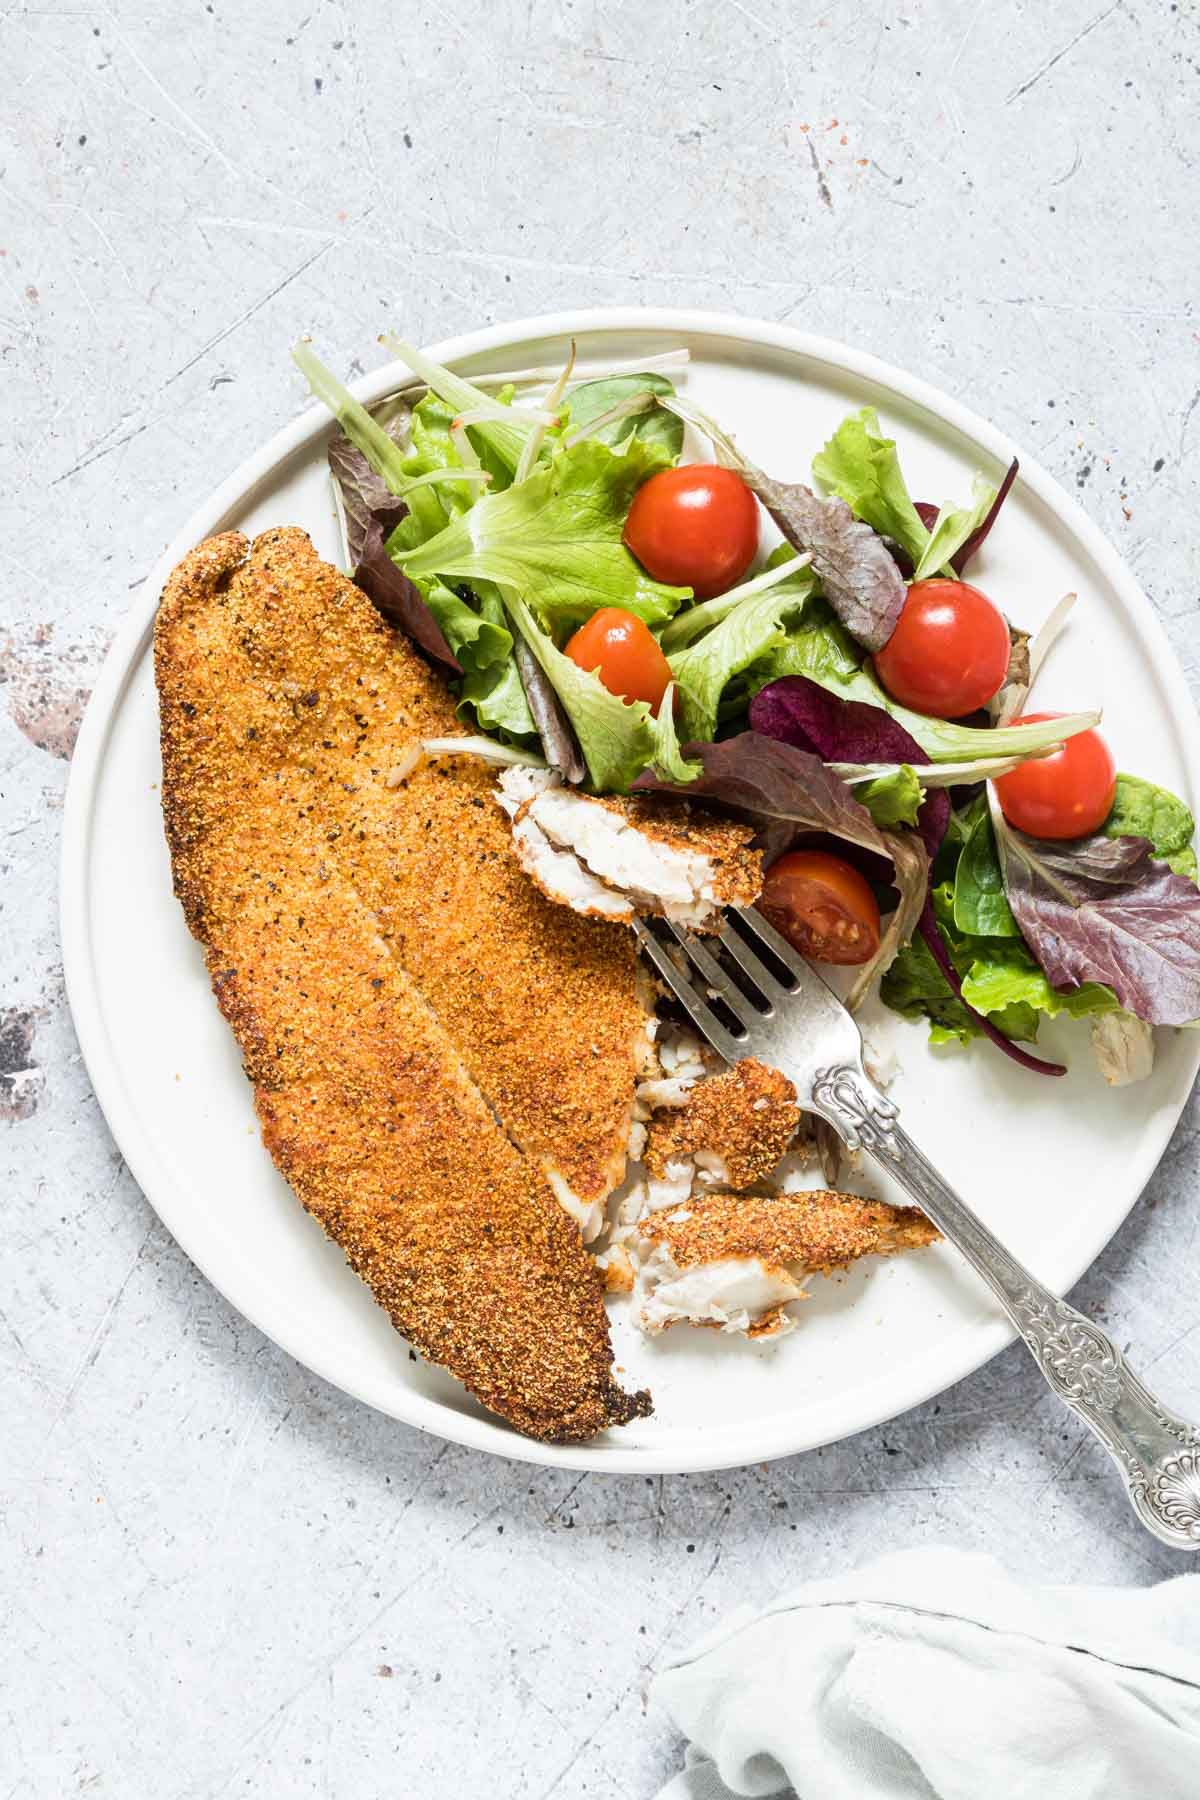 fried fish made in the air fryer on a plate with lettuce, tomatoes and a fork.